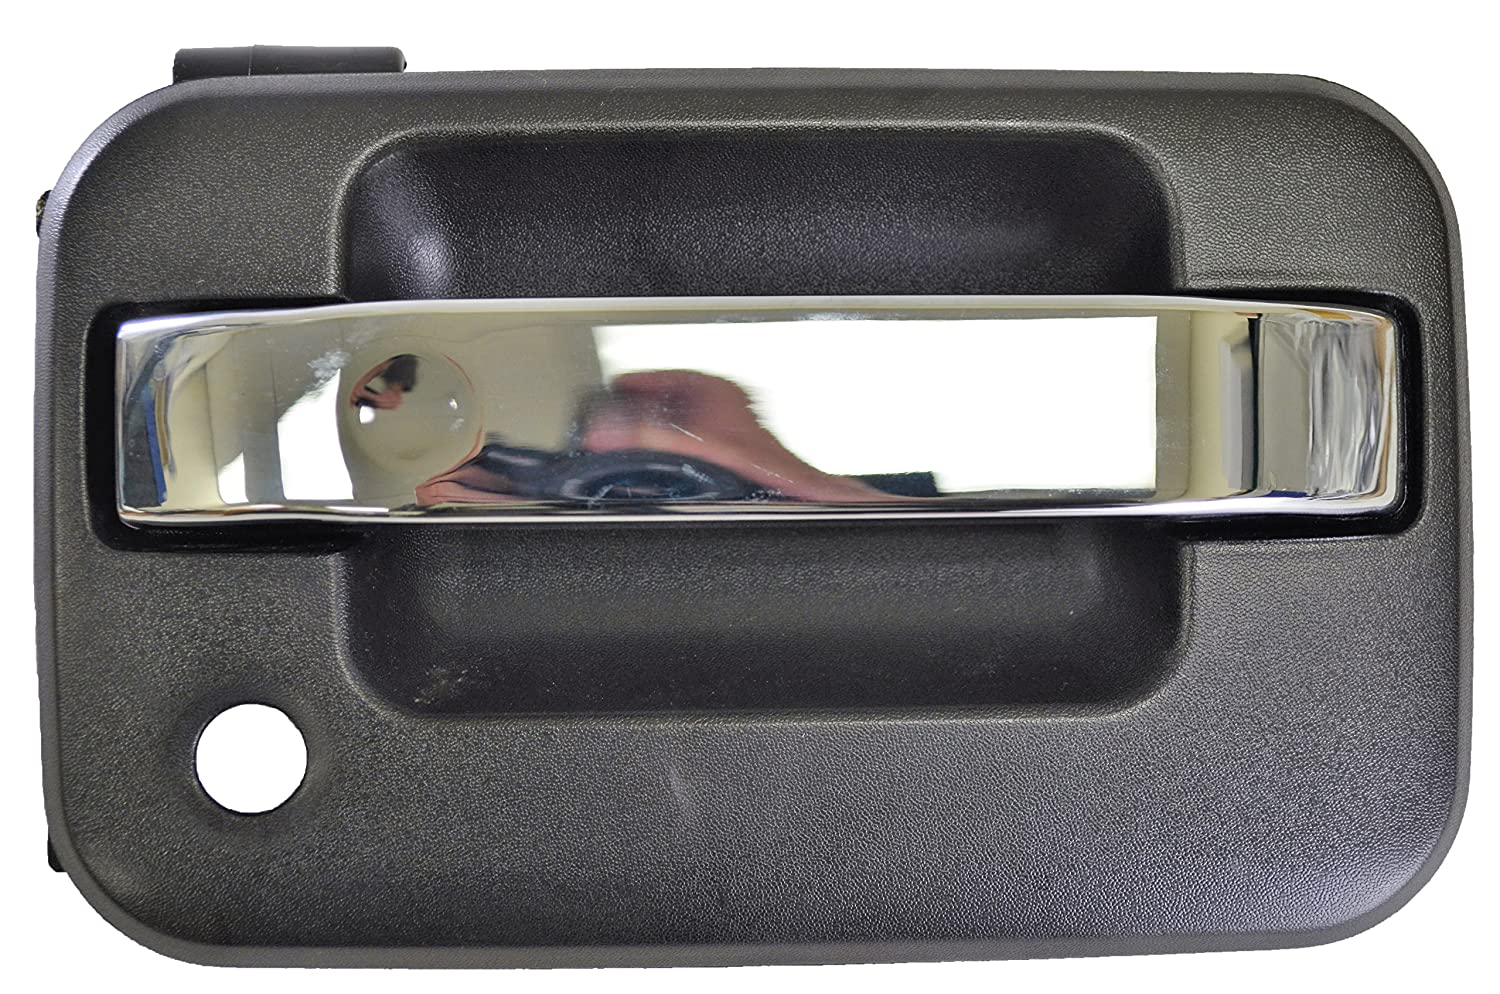 Outside Exterior Outer Door Handle Passenger Side Front Textured Black with Chrome Lever with Key Hole PT Auto Warehouse FO-3505MA-FR